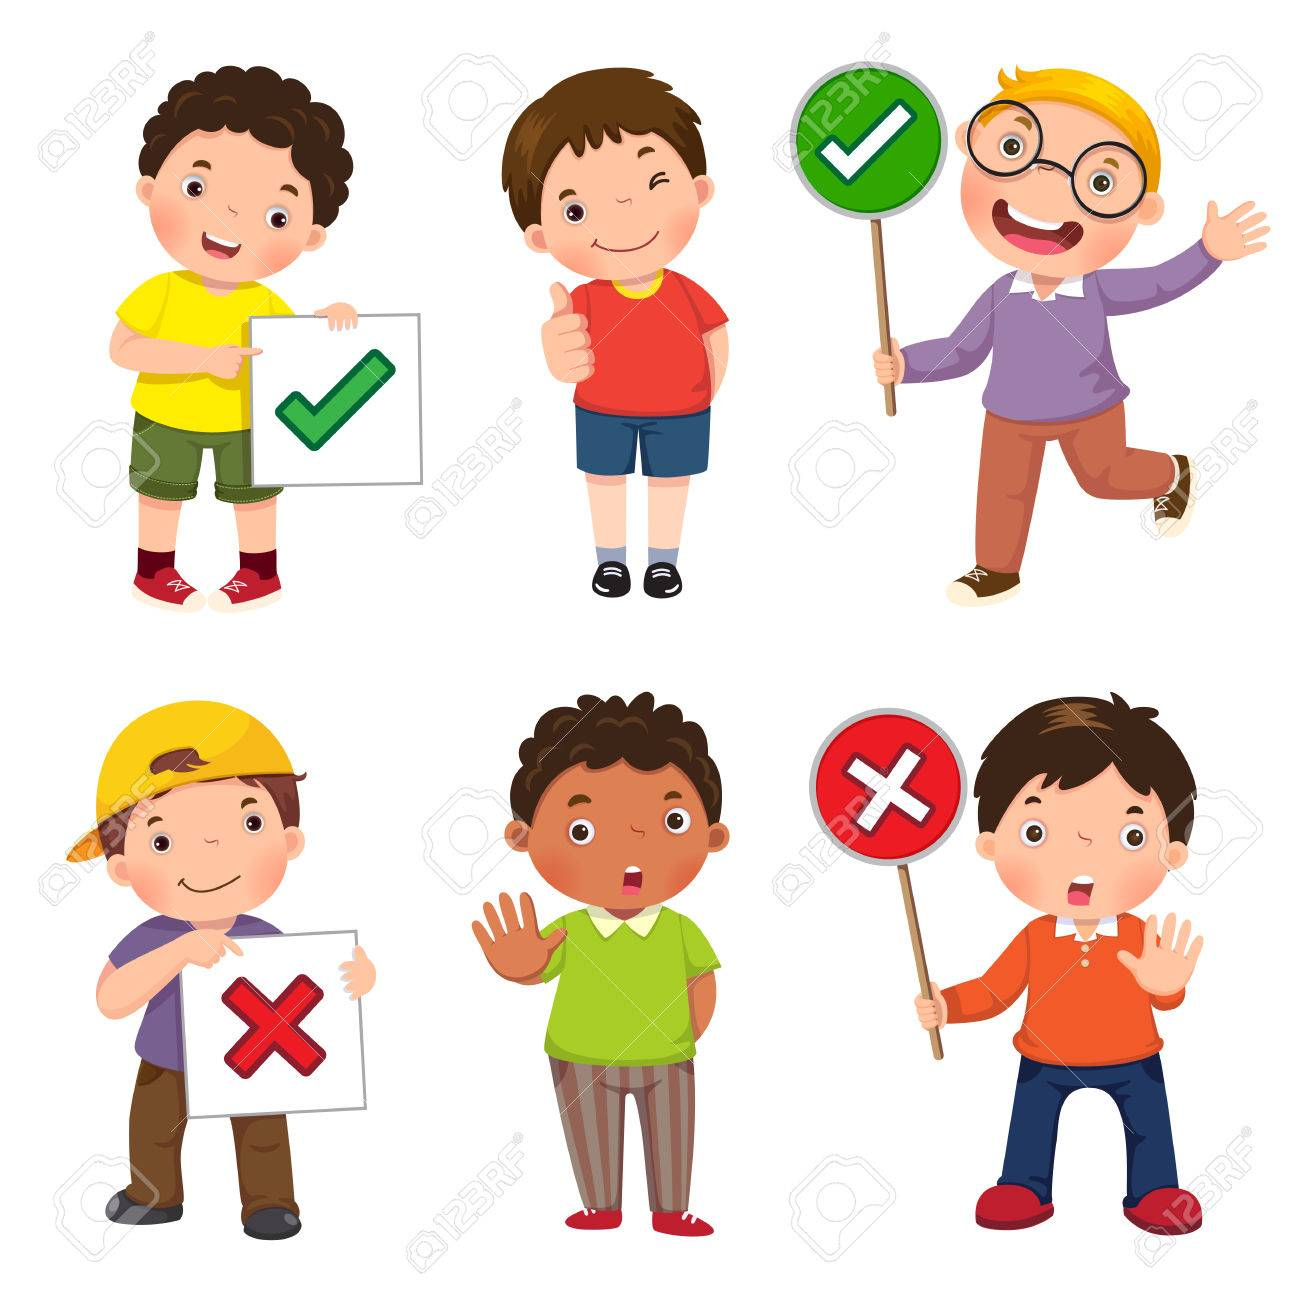 Set of boys holding and doing right and wrong signs - 71309271